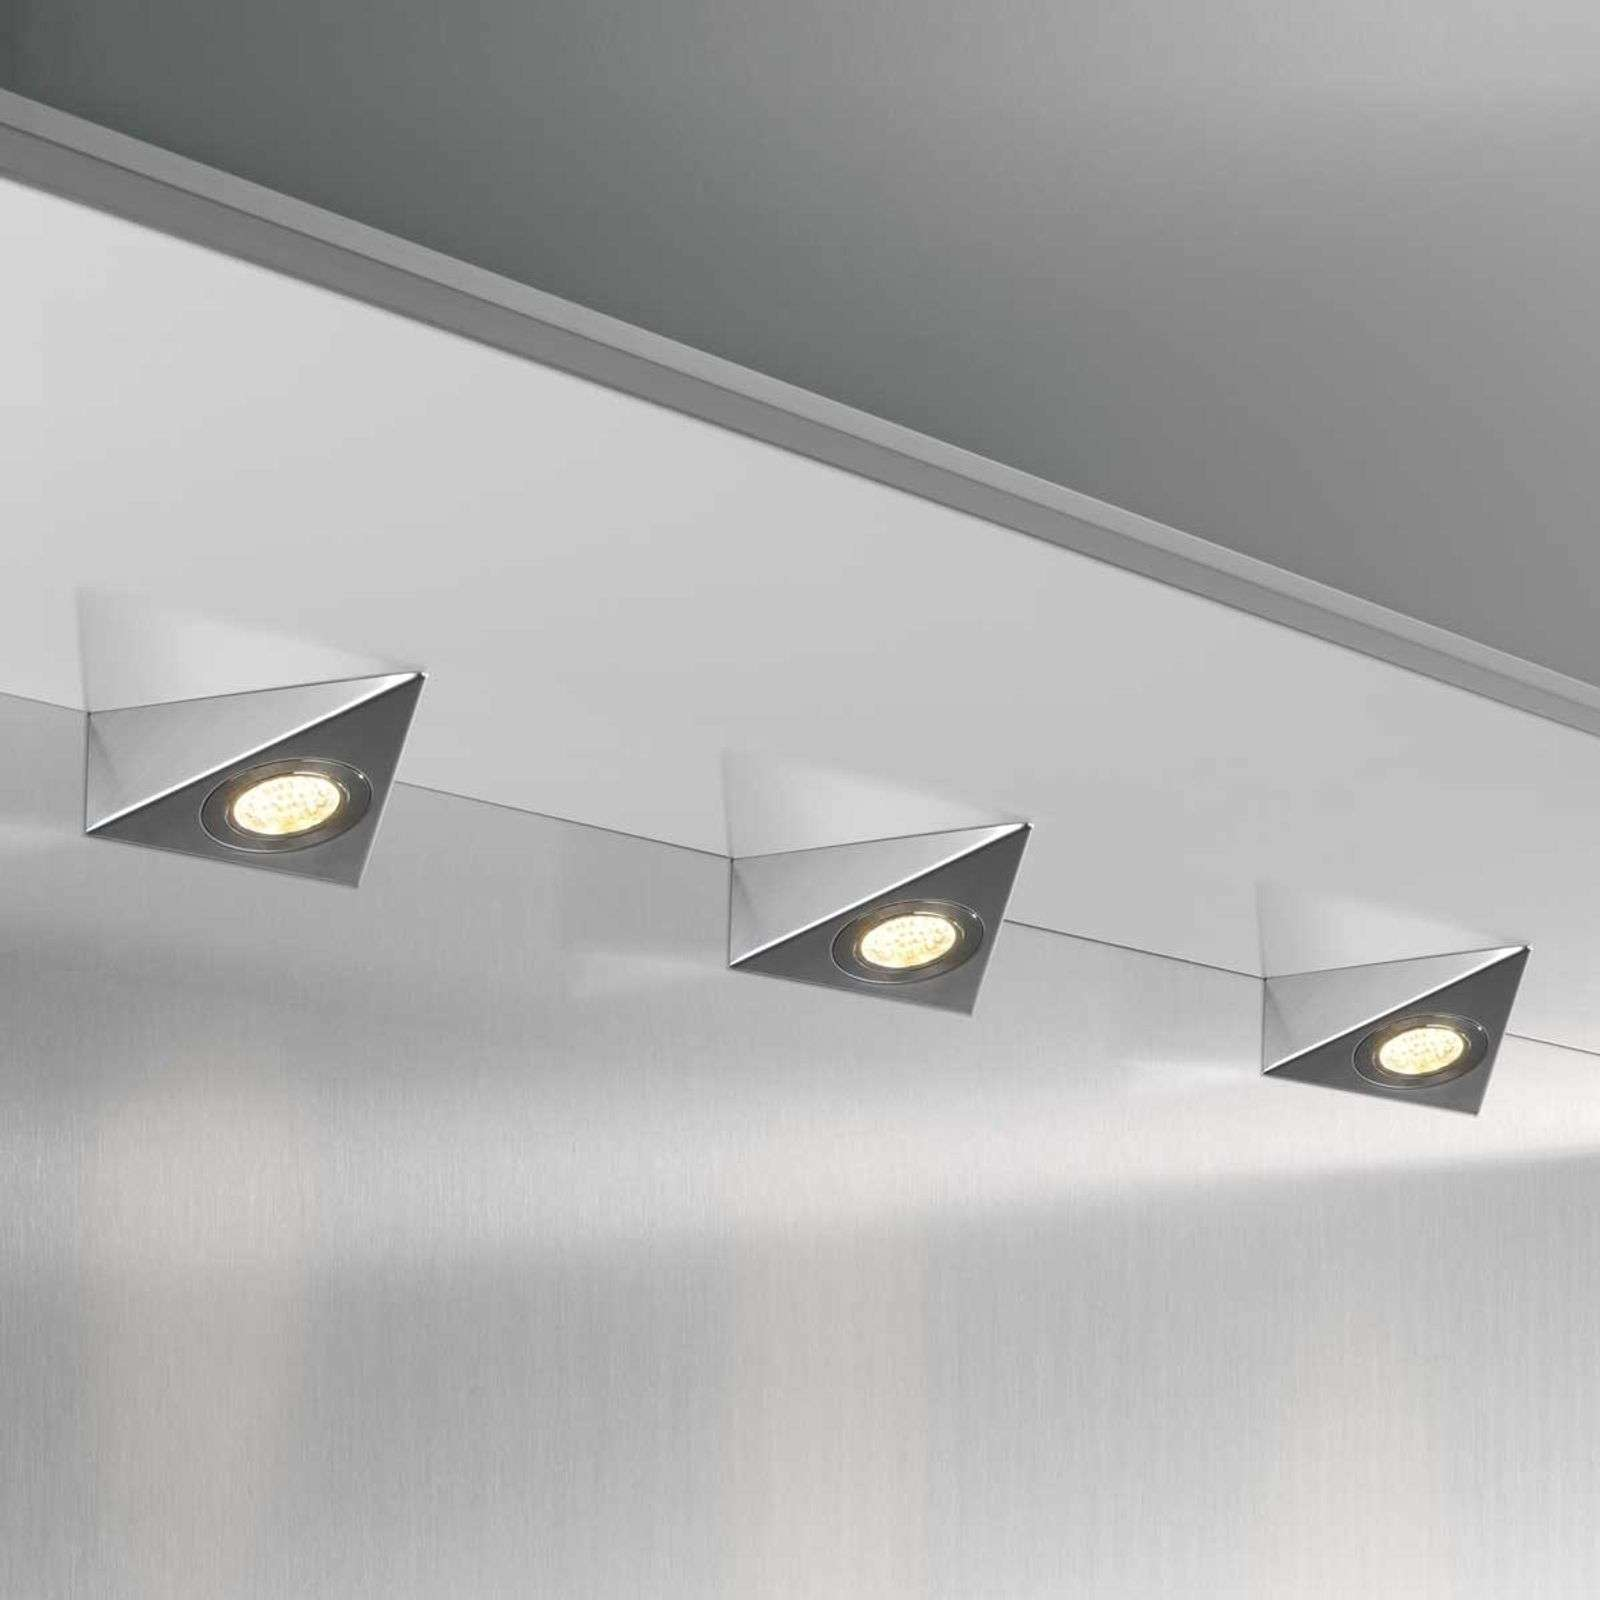 DHL CF - Set 3 lámparas LED bajo mueble triangular